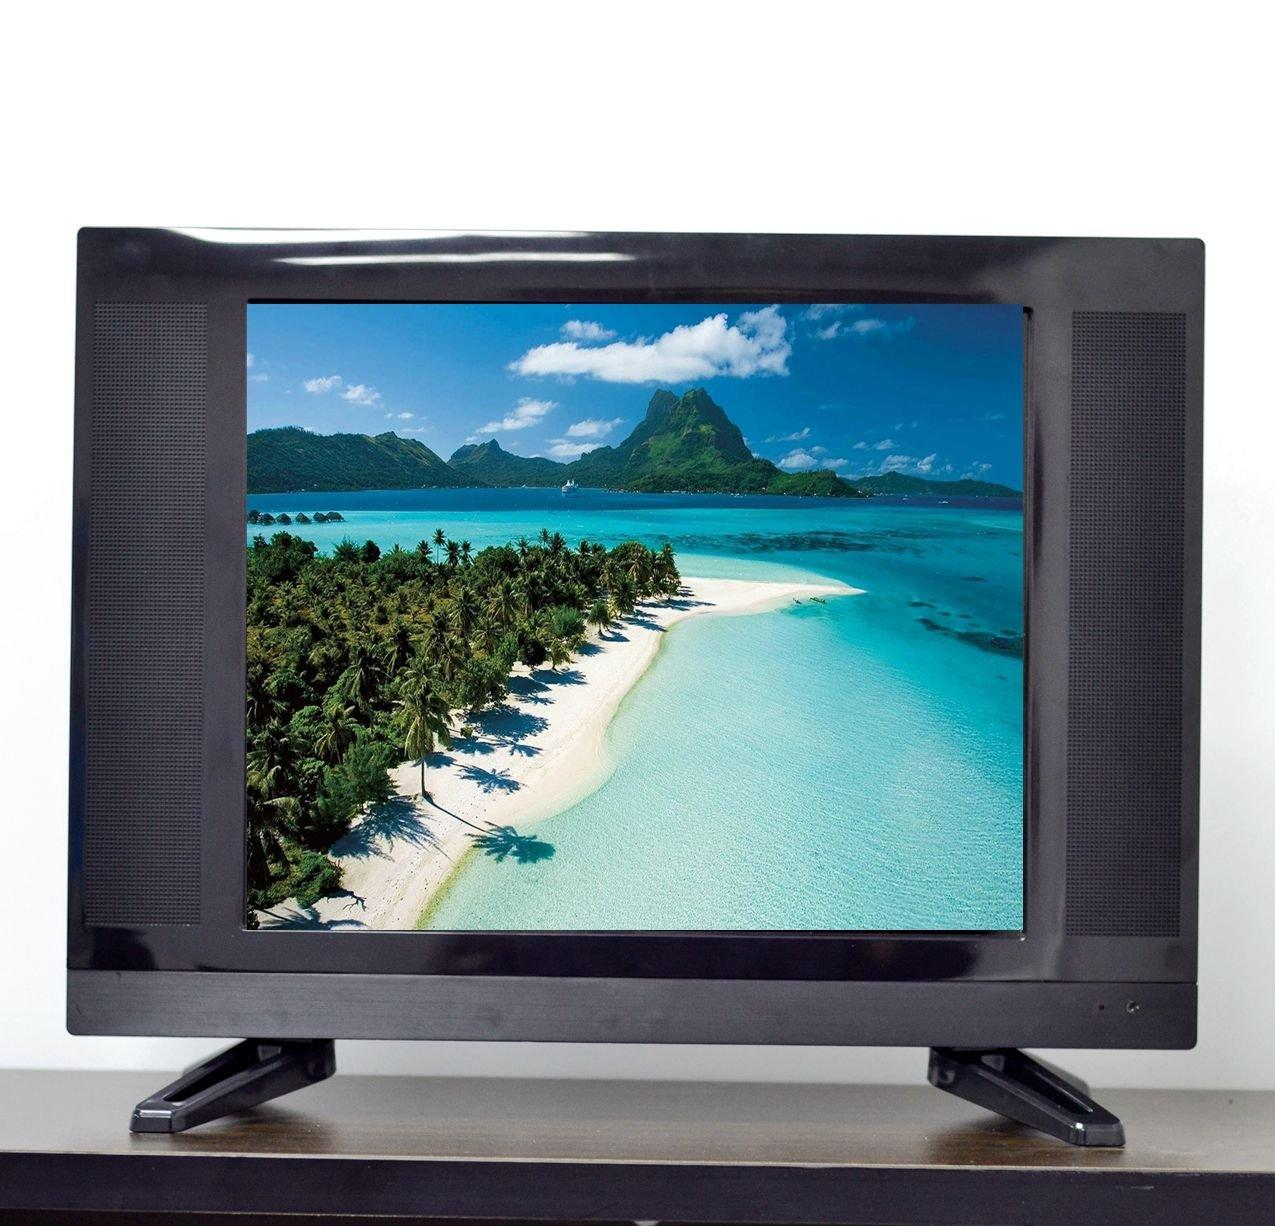 Xinyao LCD fashion lcd tv 15 inch price popular for lcd screen